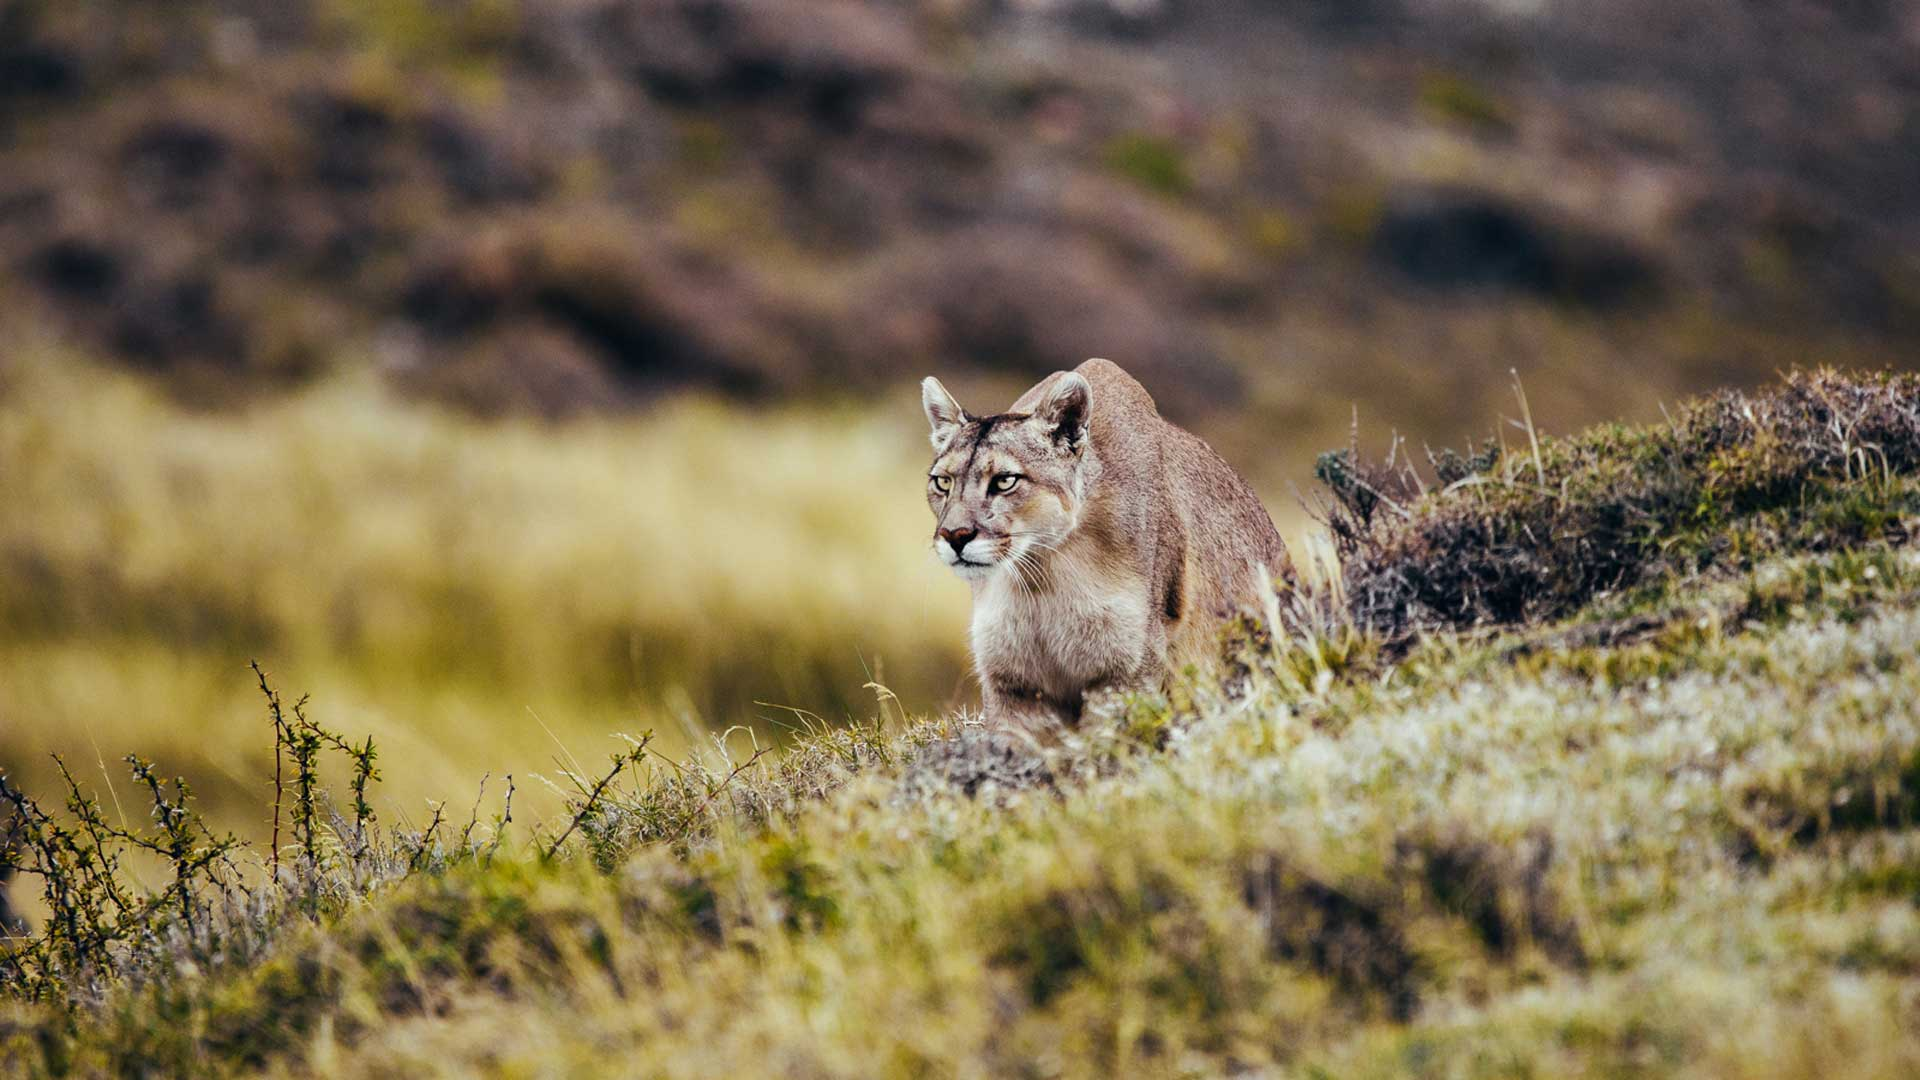 Puma in Chilean Patagonia | © Pie Aerts